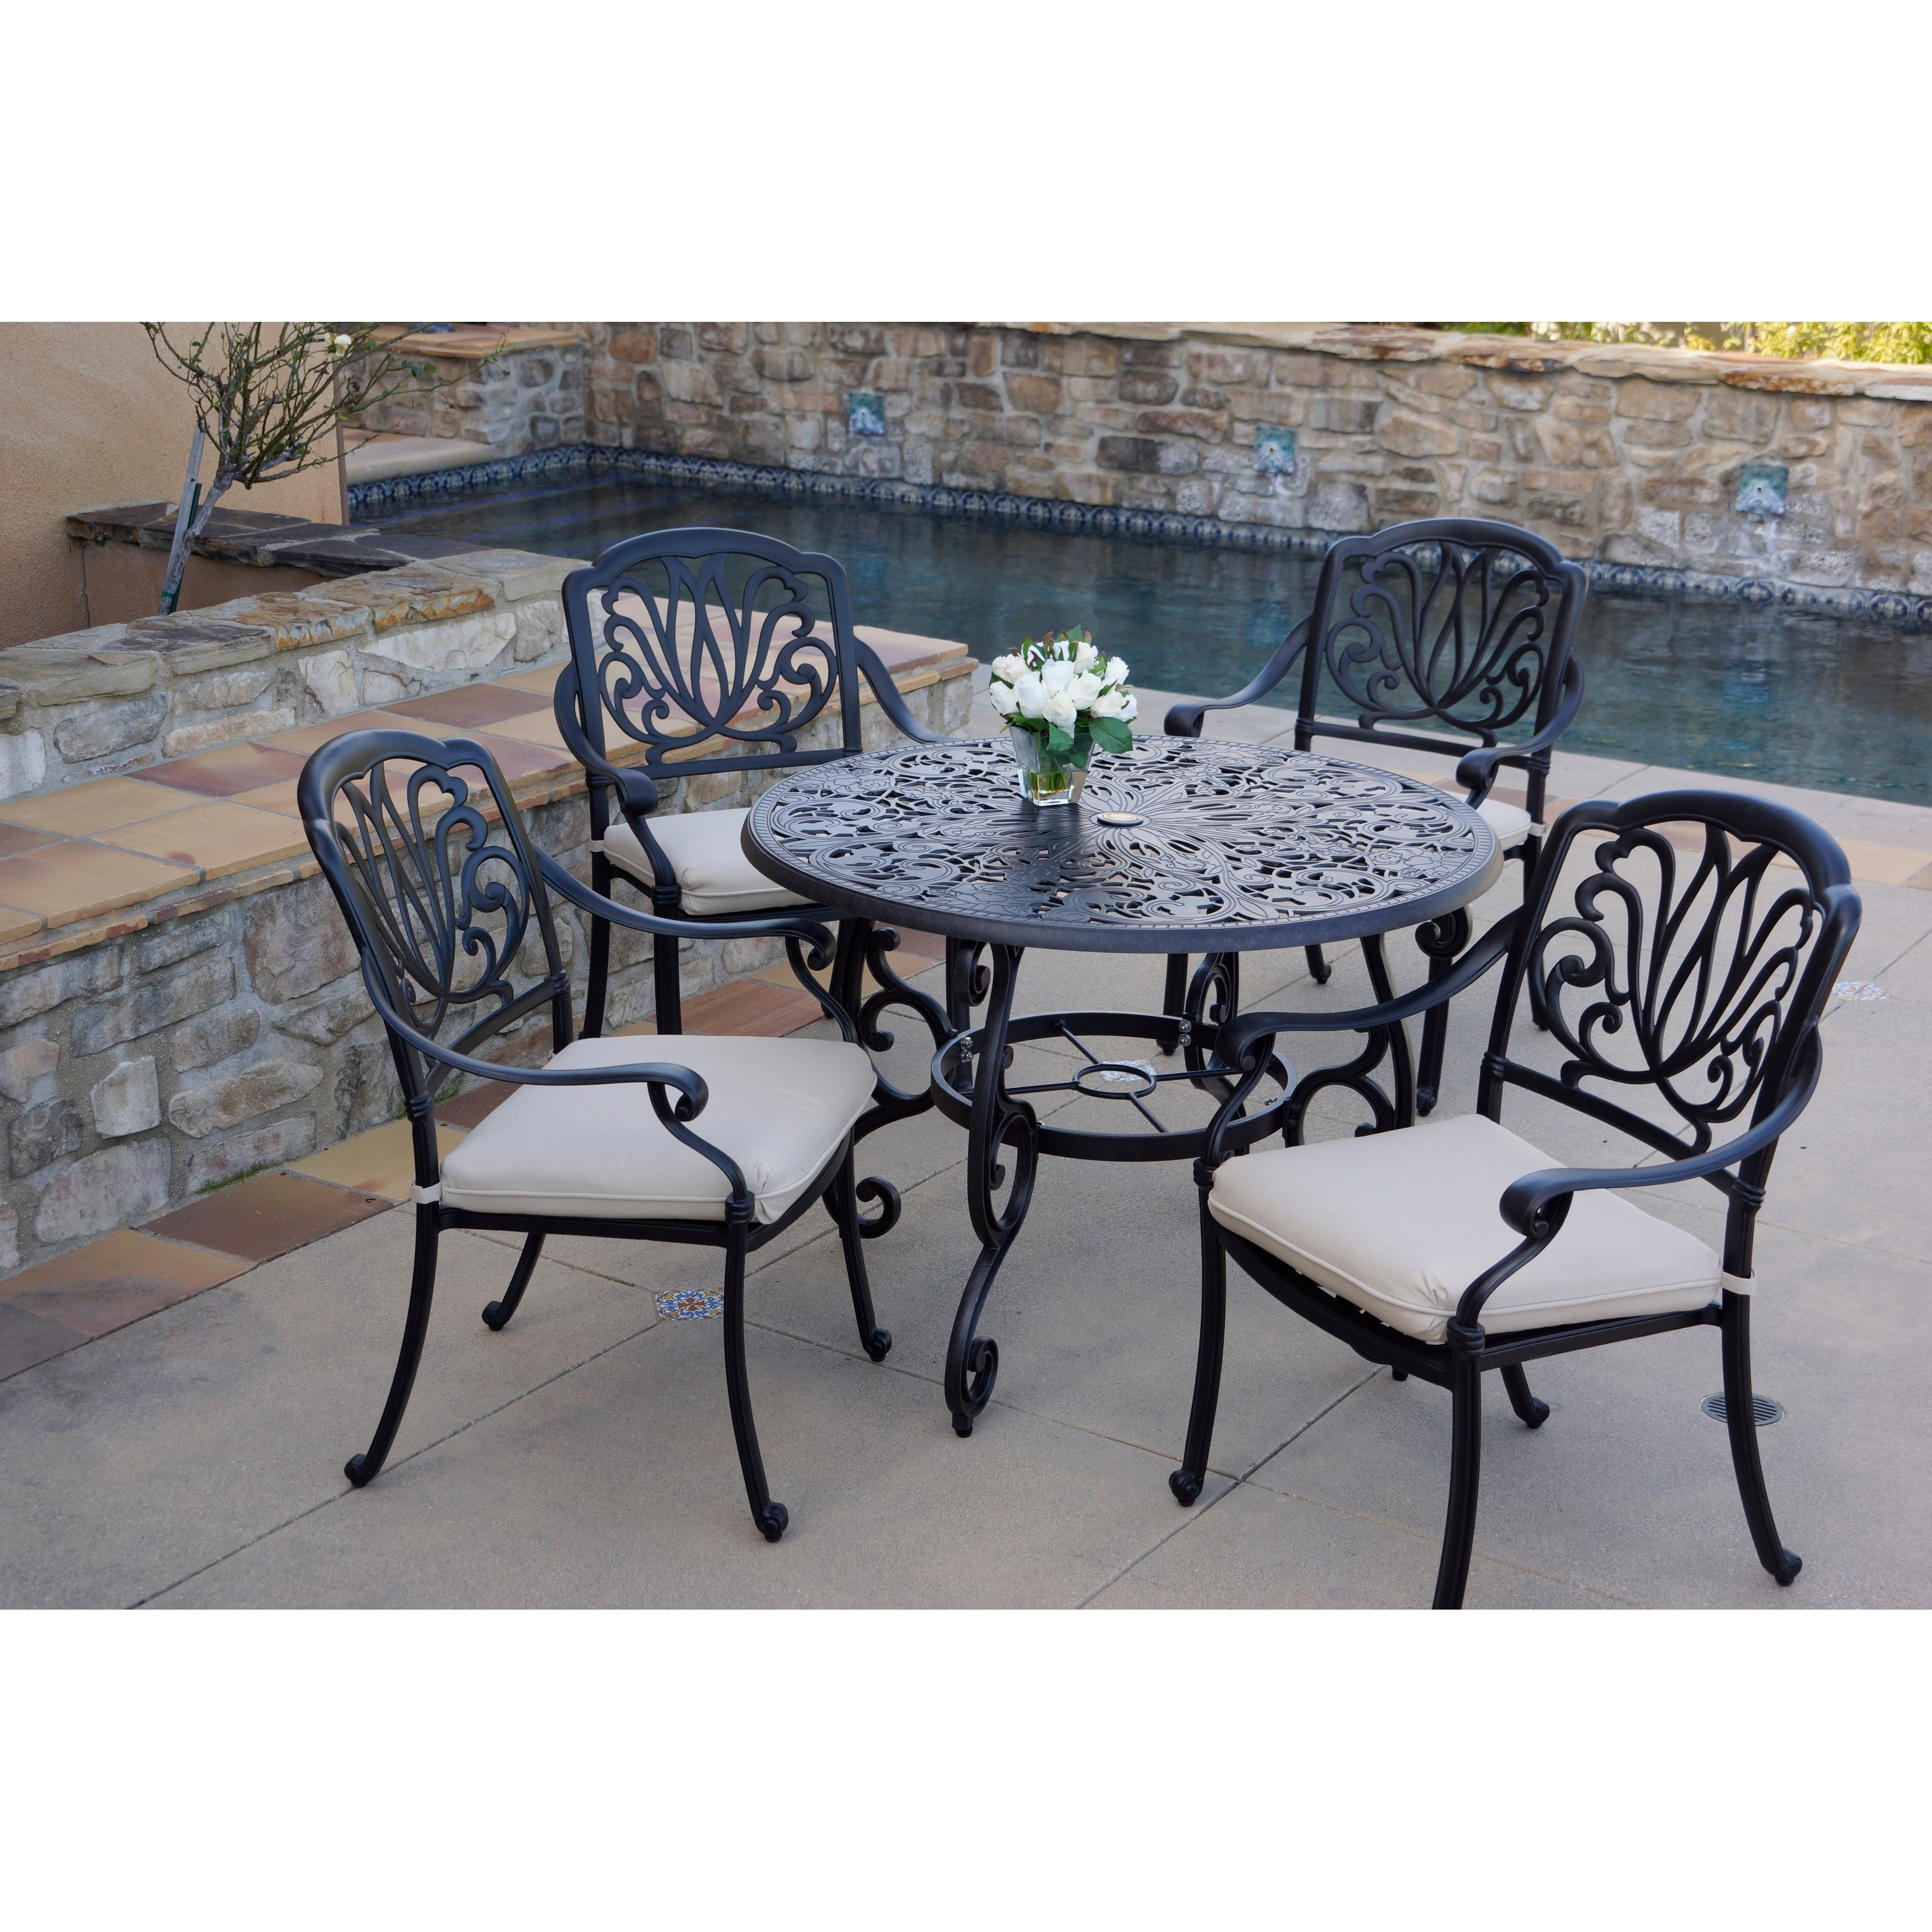 5 Piece Patio Dining Set 42 Inch Round Dining Table Overstock 27326461